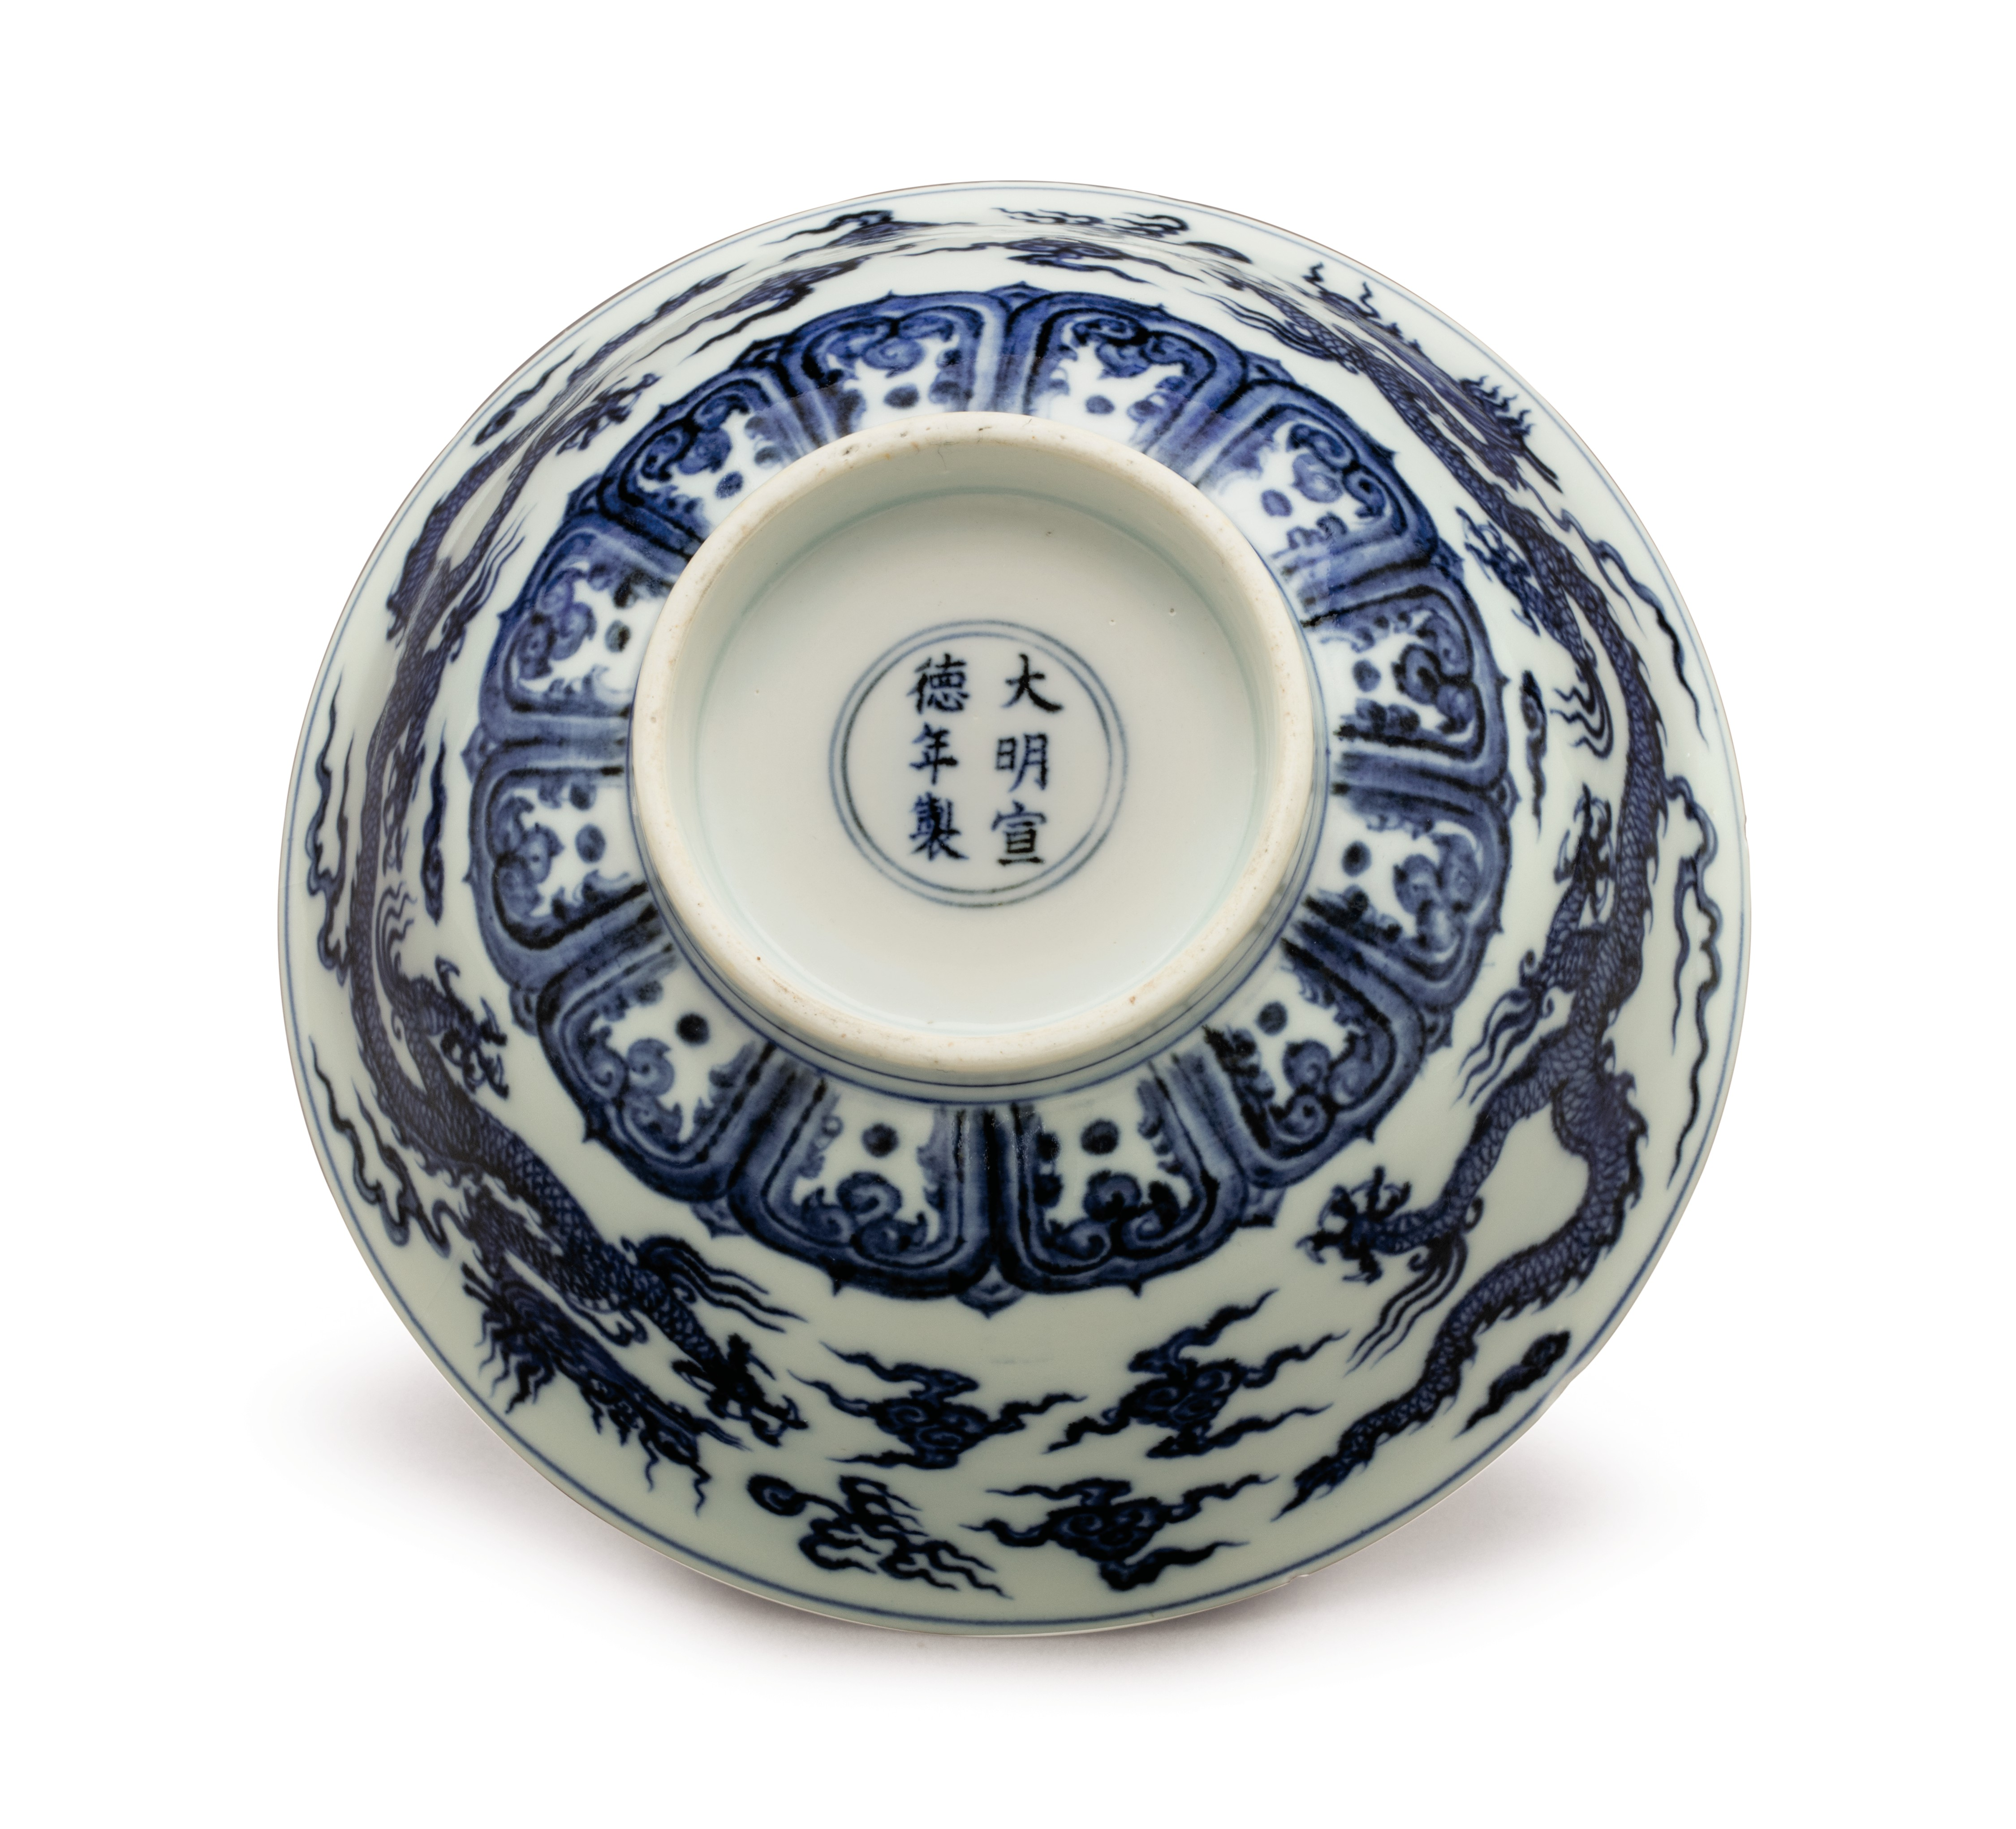 A RARE ANHUA-DECORATED BLUE AND WHITE 'DRAGON' BOWL